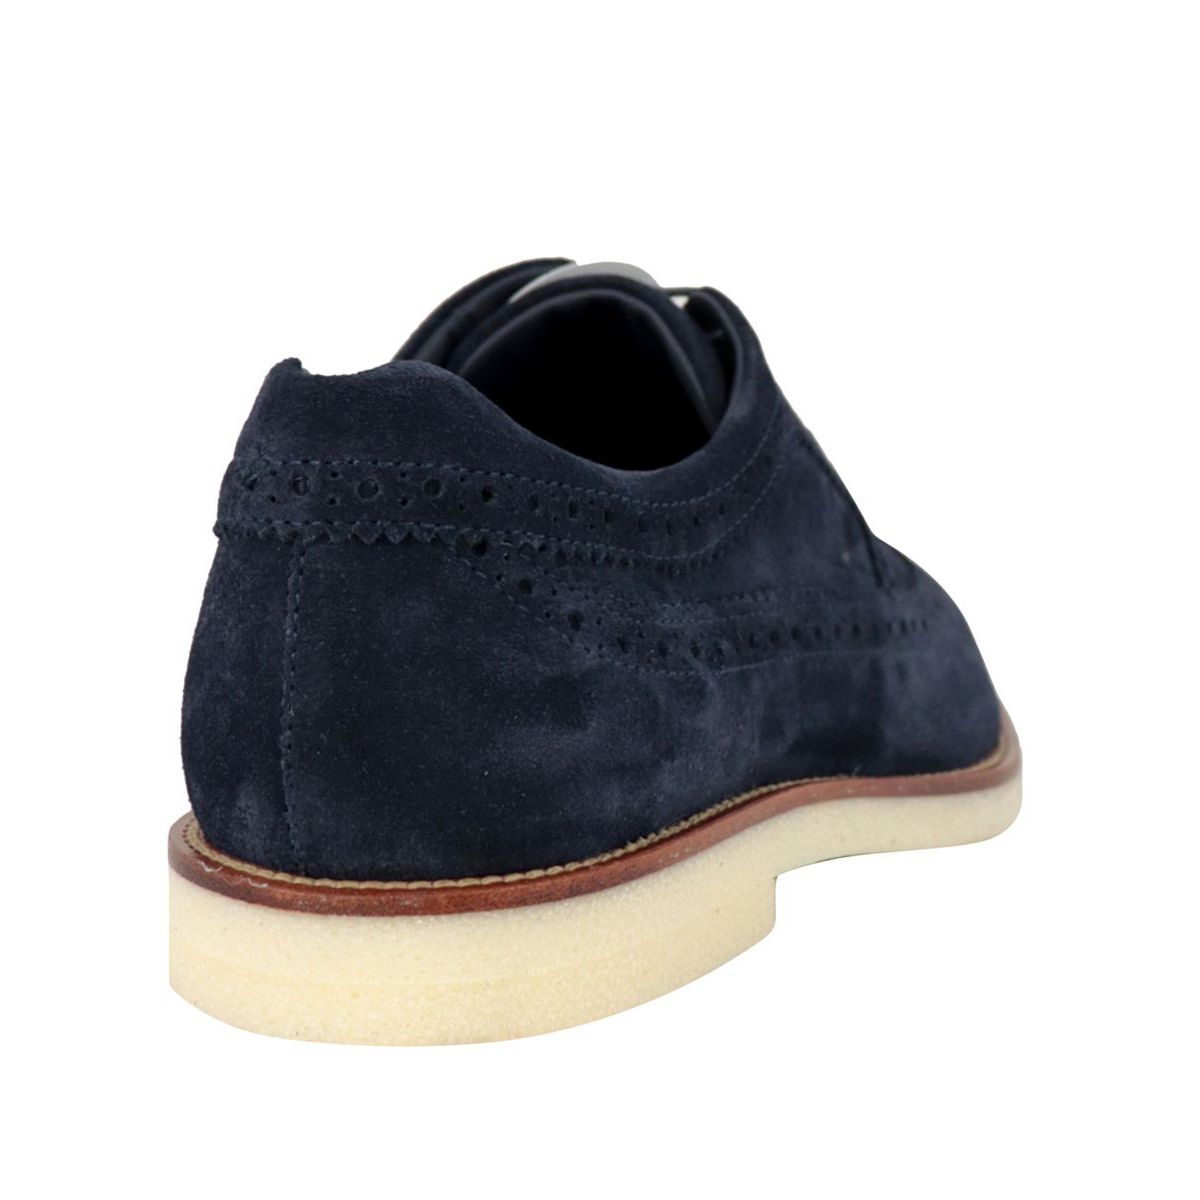 Lace-up shoe bottom 456 Business Casual Navy Hogan